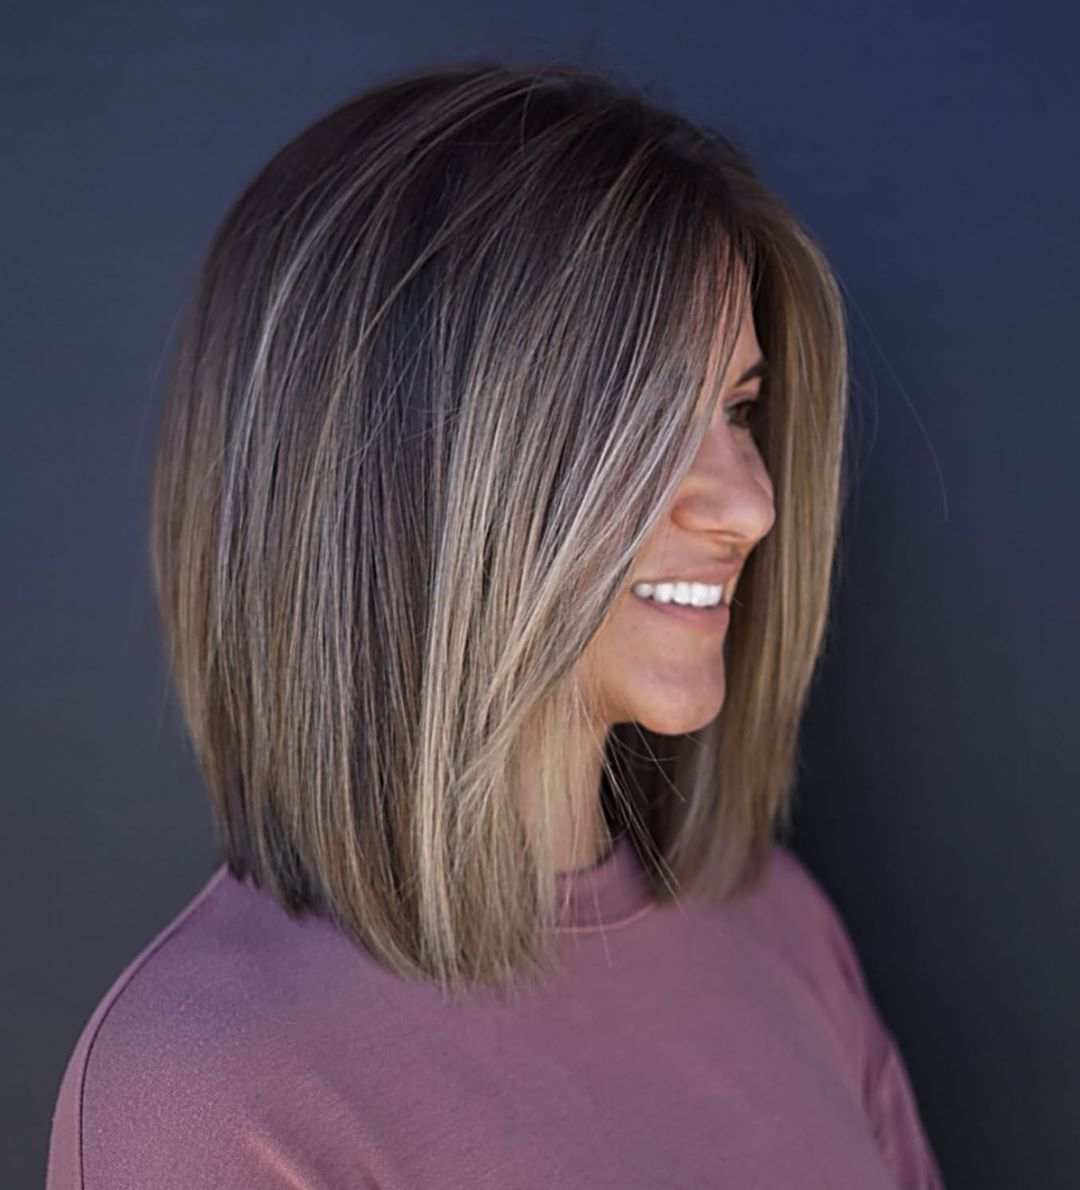 22 Stunning Long Bob Hairstyles In 2020 Long Bob Hairstyles